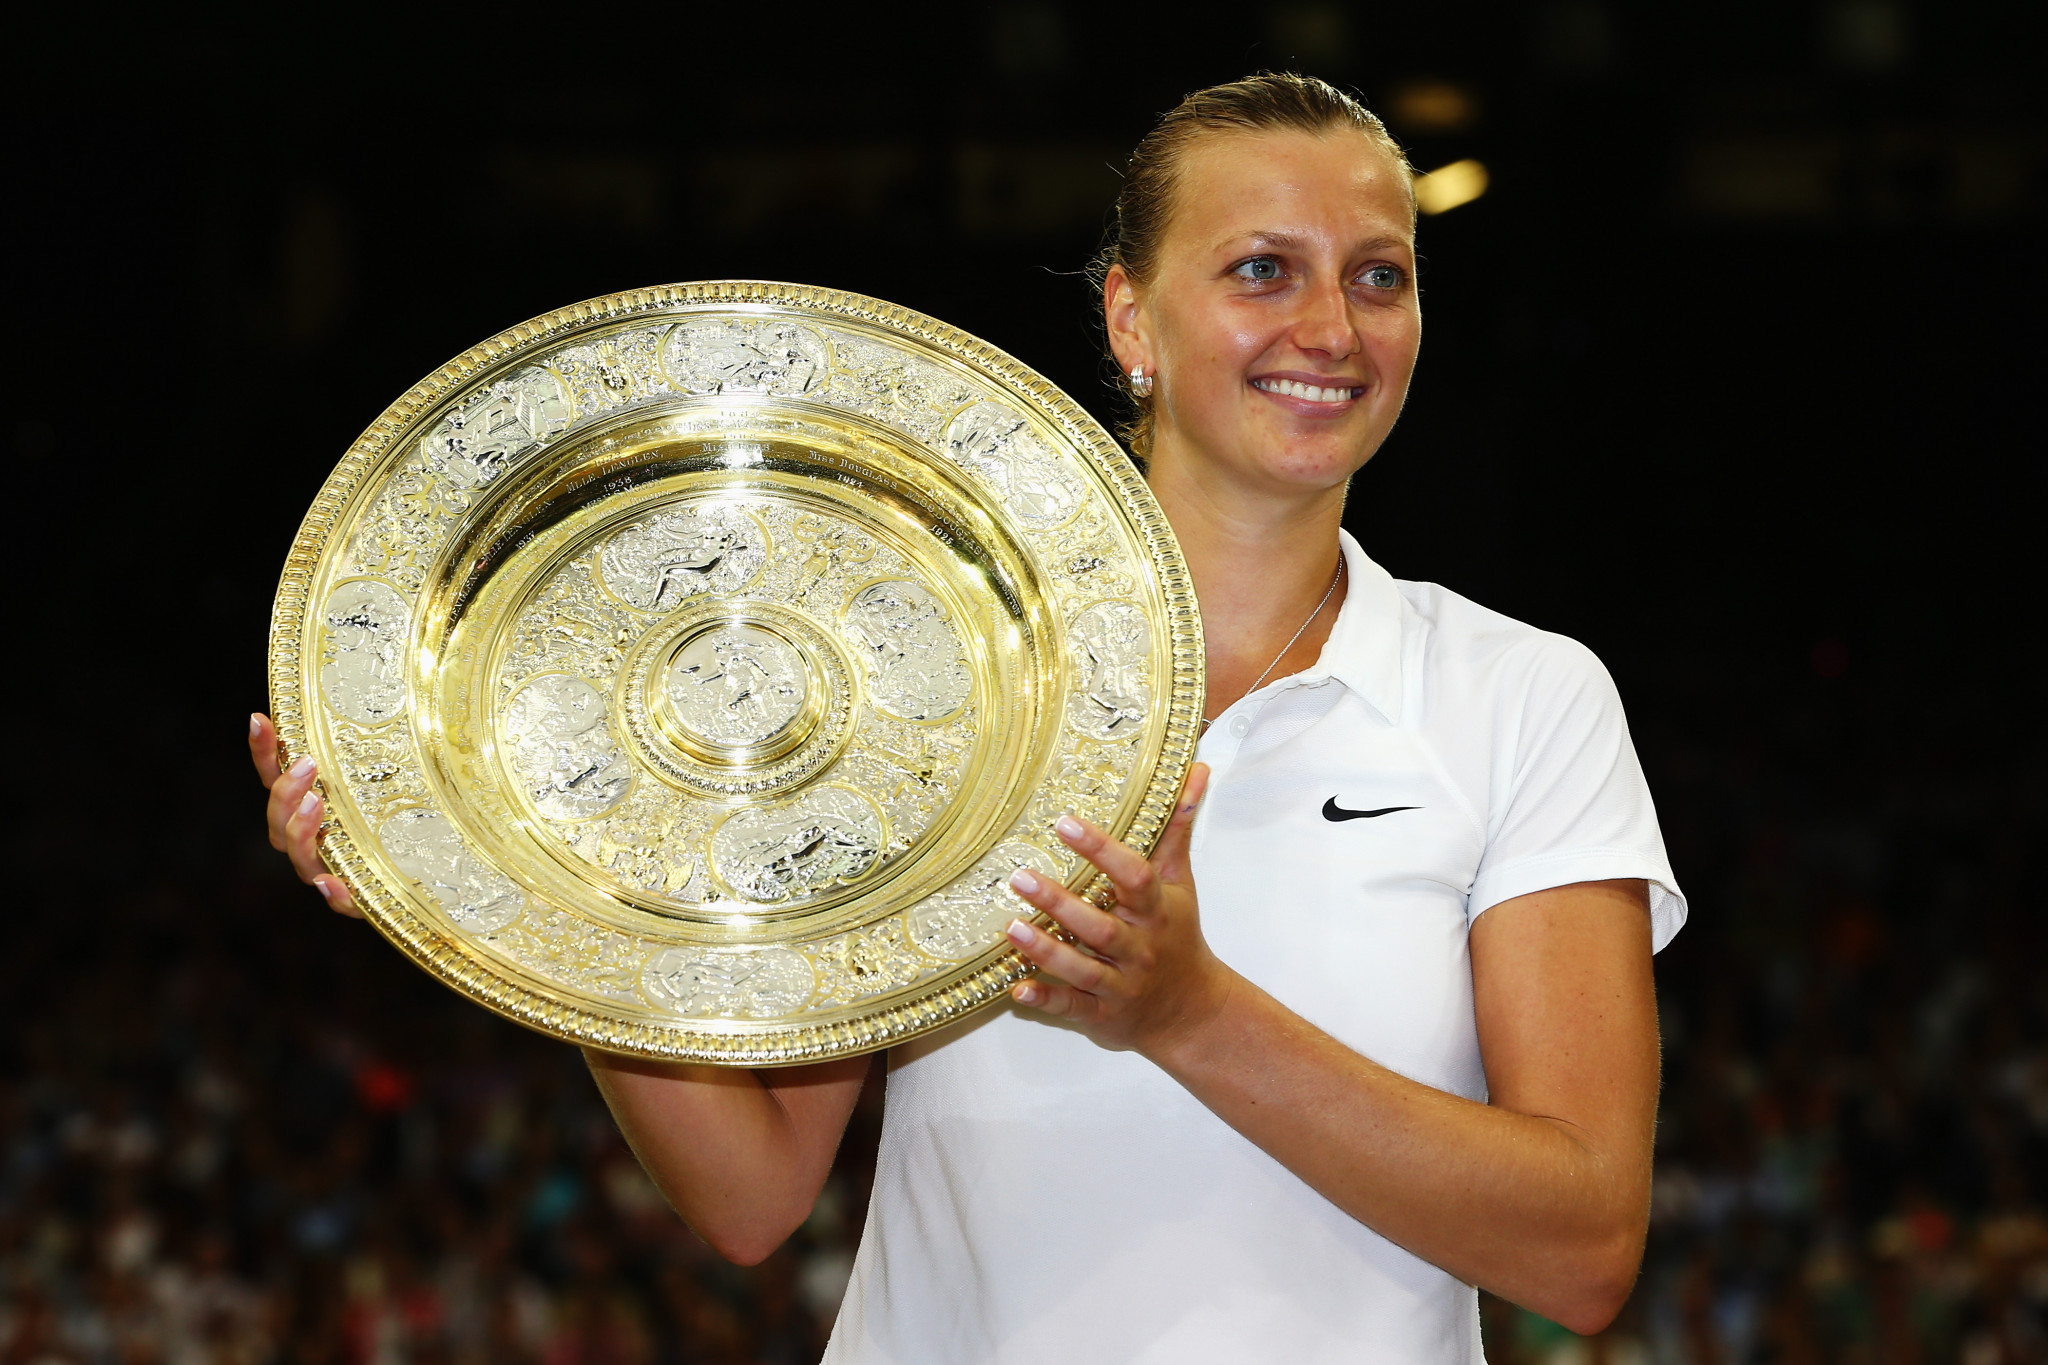 Petra Kvitová has won Wimbledon twice, in 2011 and 2014 ©Getty Images